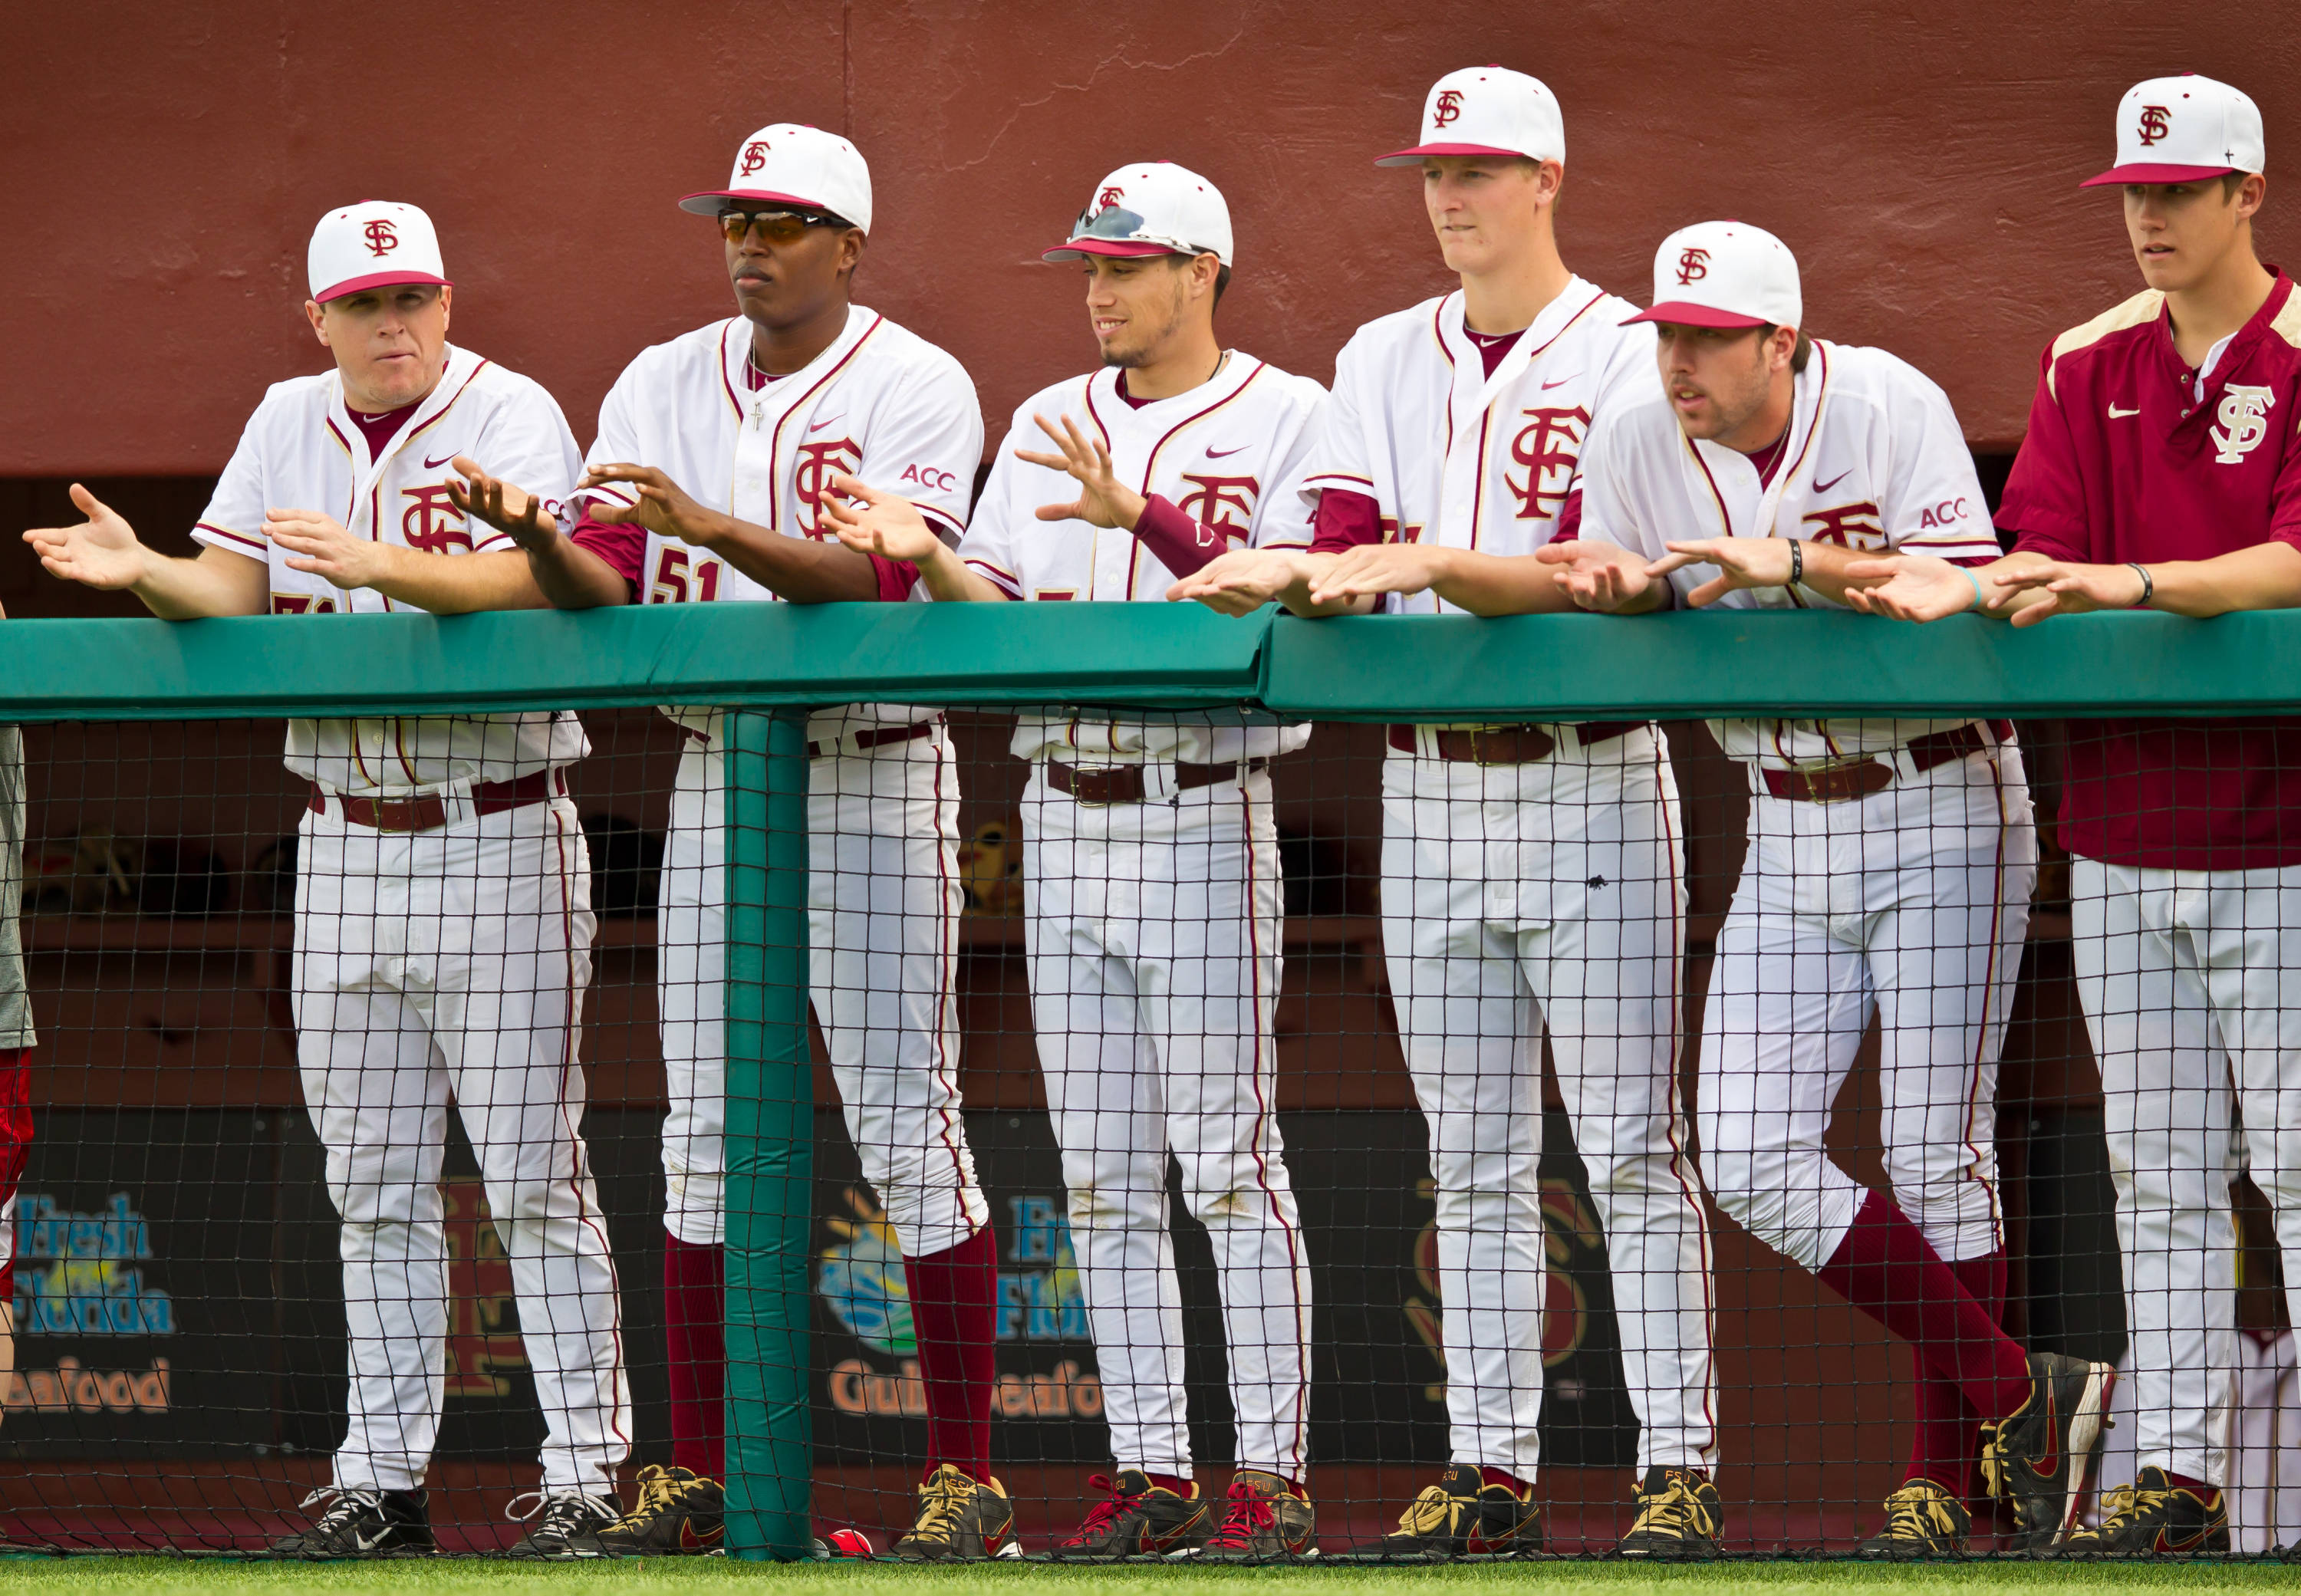 The Seminoles look on from the first base dugout.